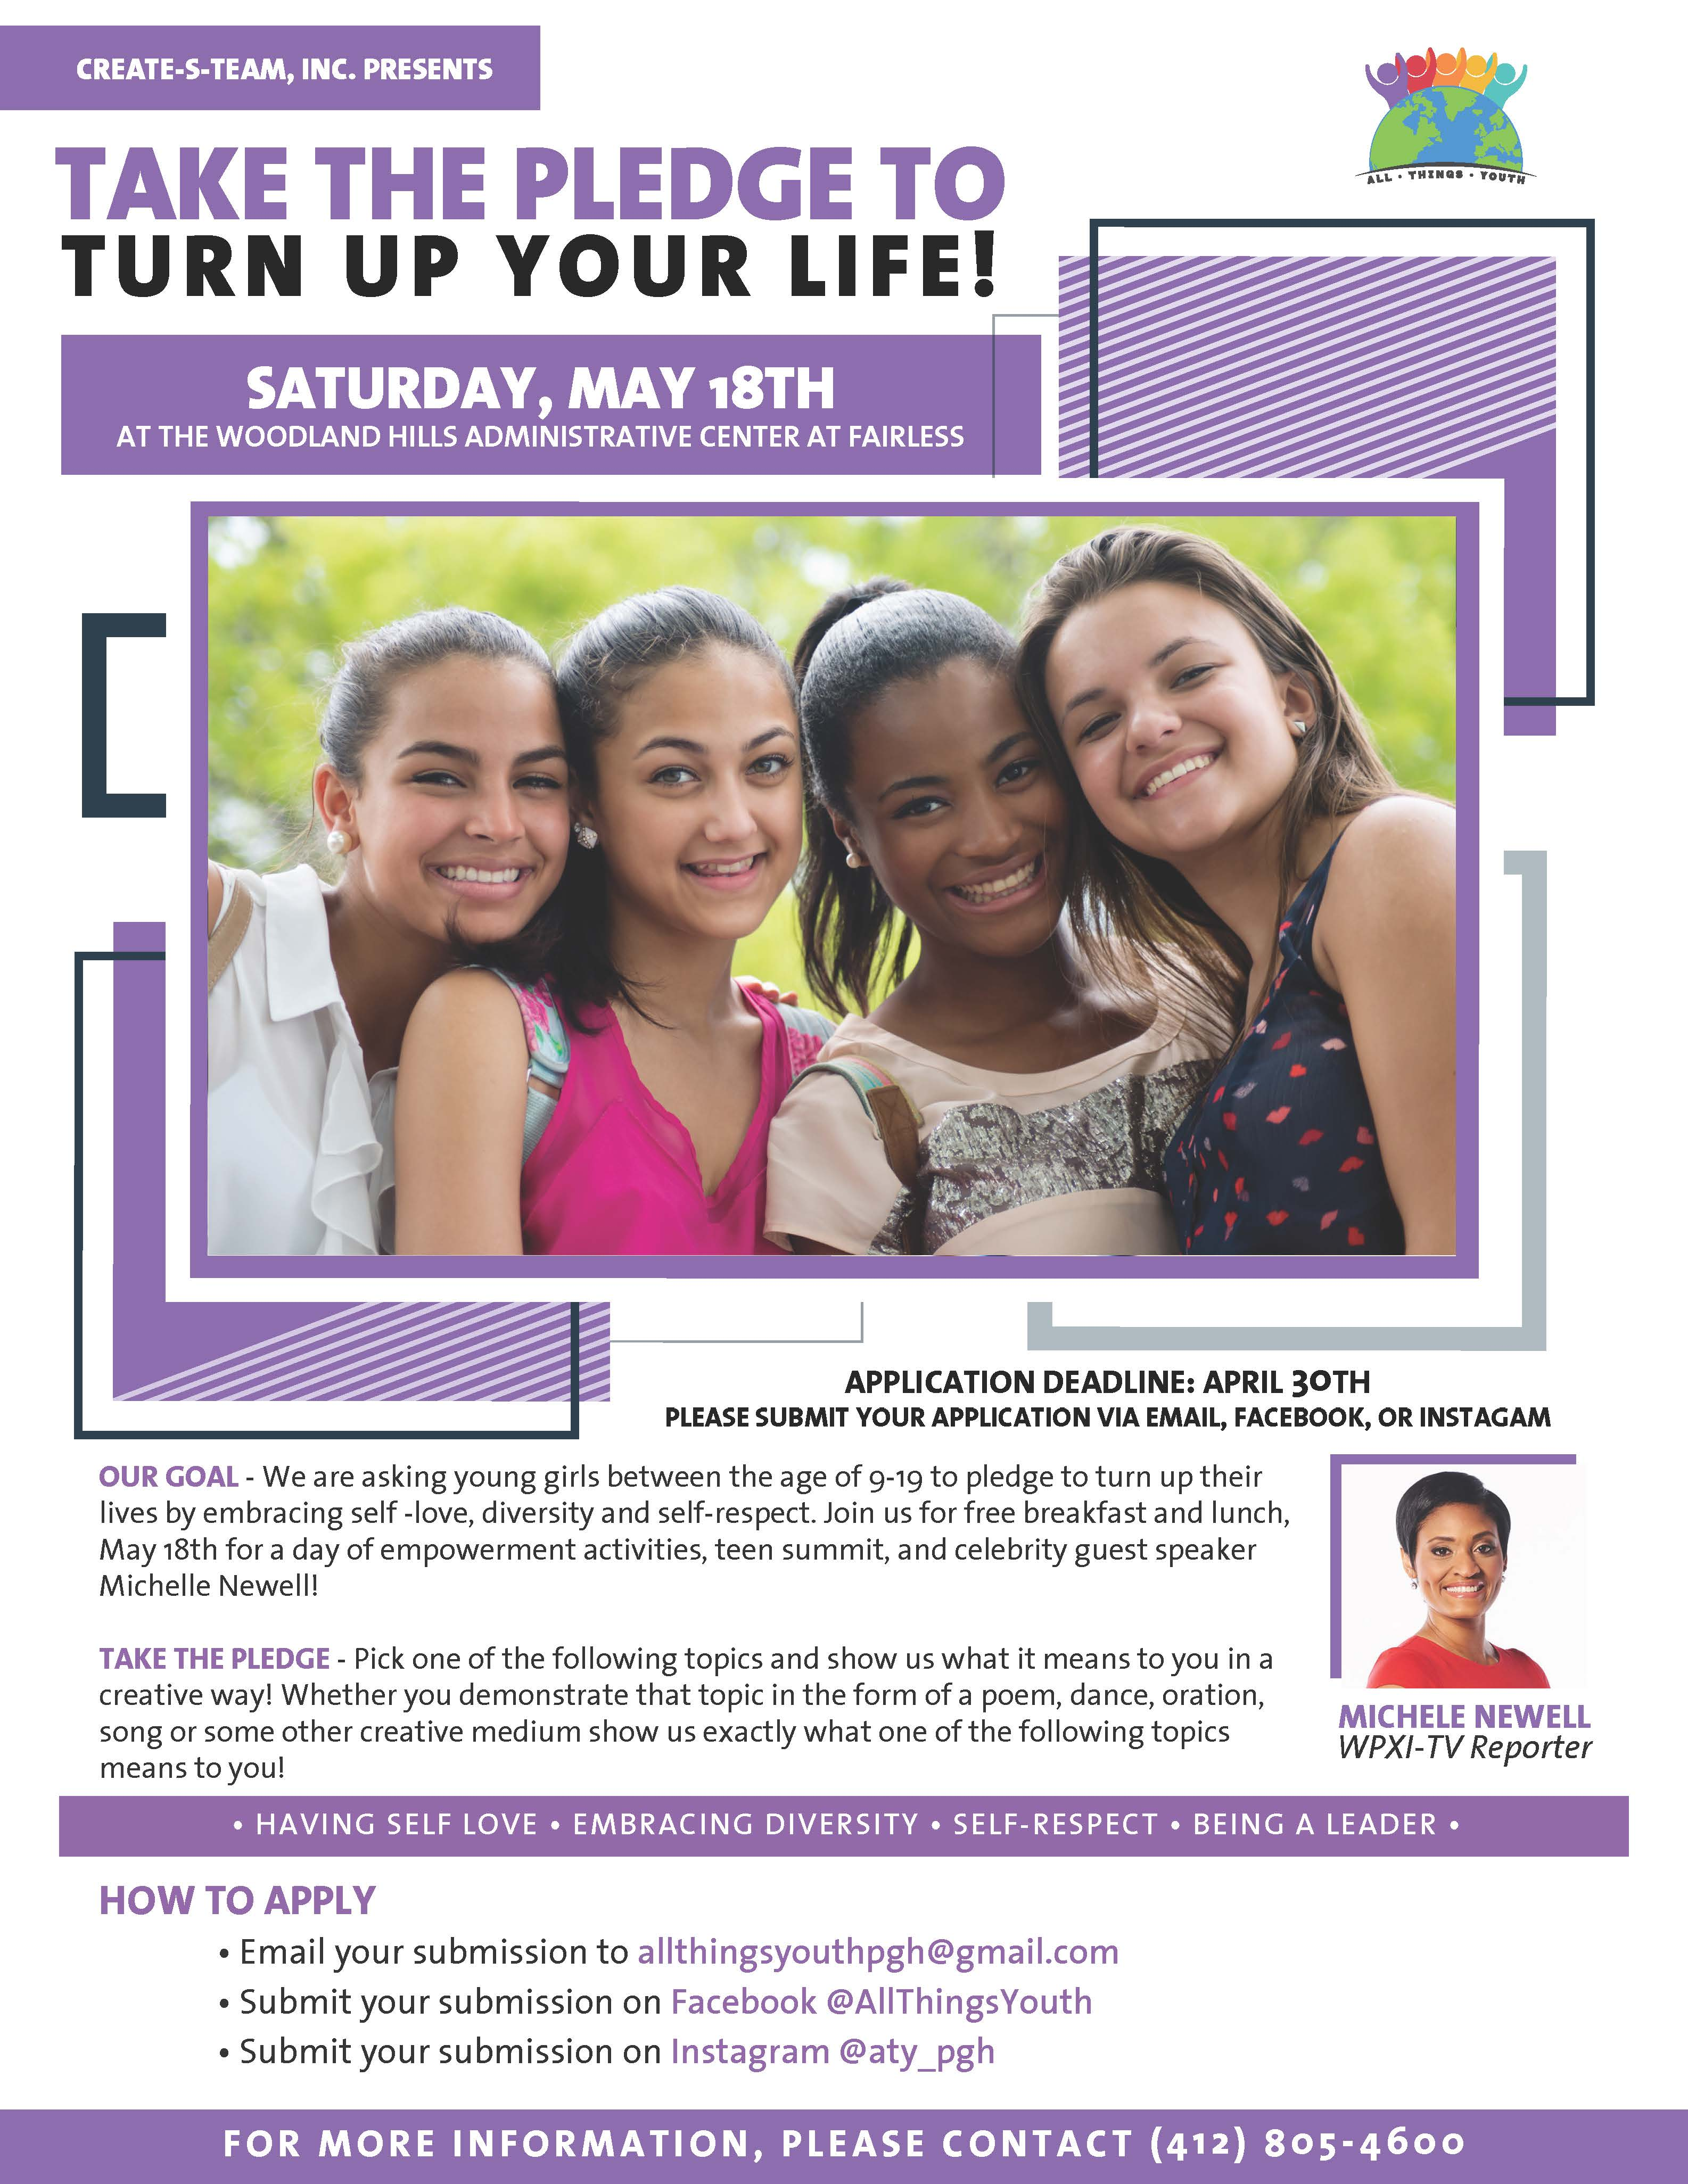 TAKE THE PLEDGE TO TURN UP YOUR LIFE GIRL'S EMPOWERMENT CONFERENCE